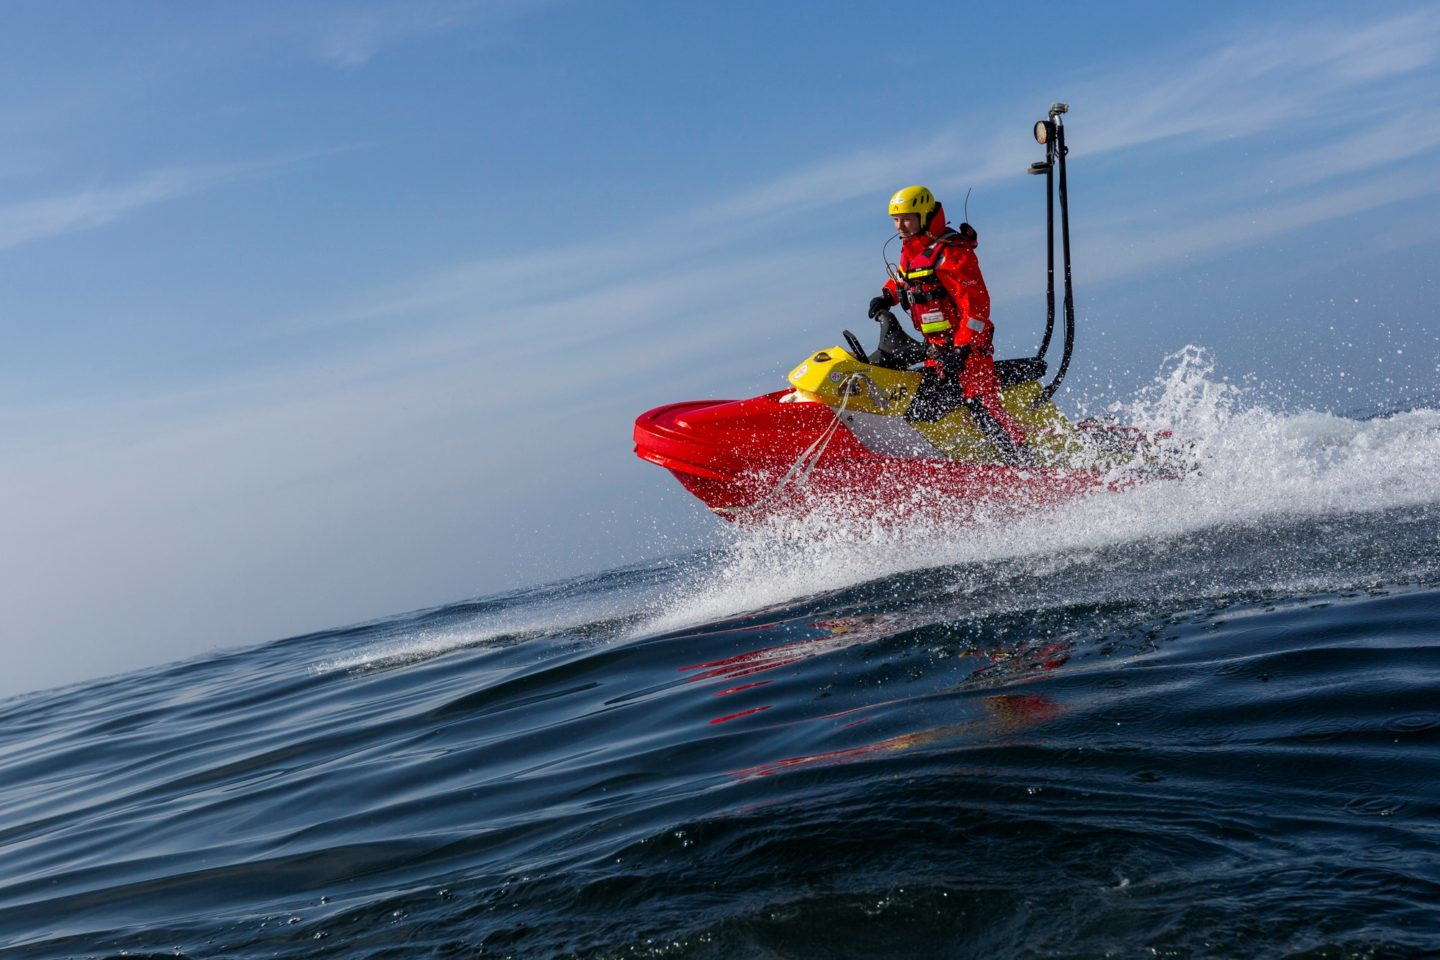 Swedish Sea Rescue Society on a mission with RescueRunner